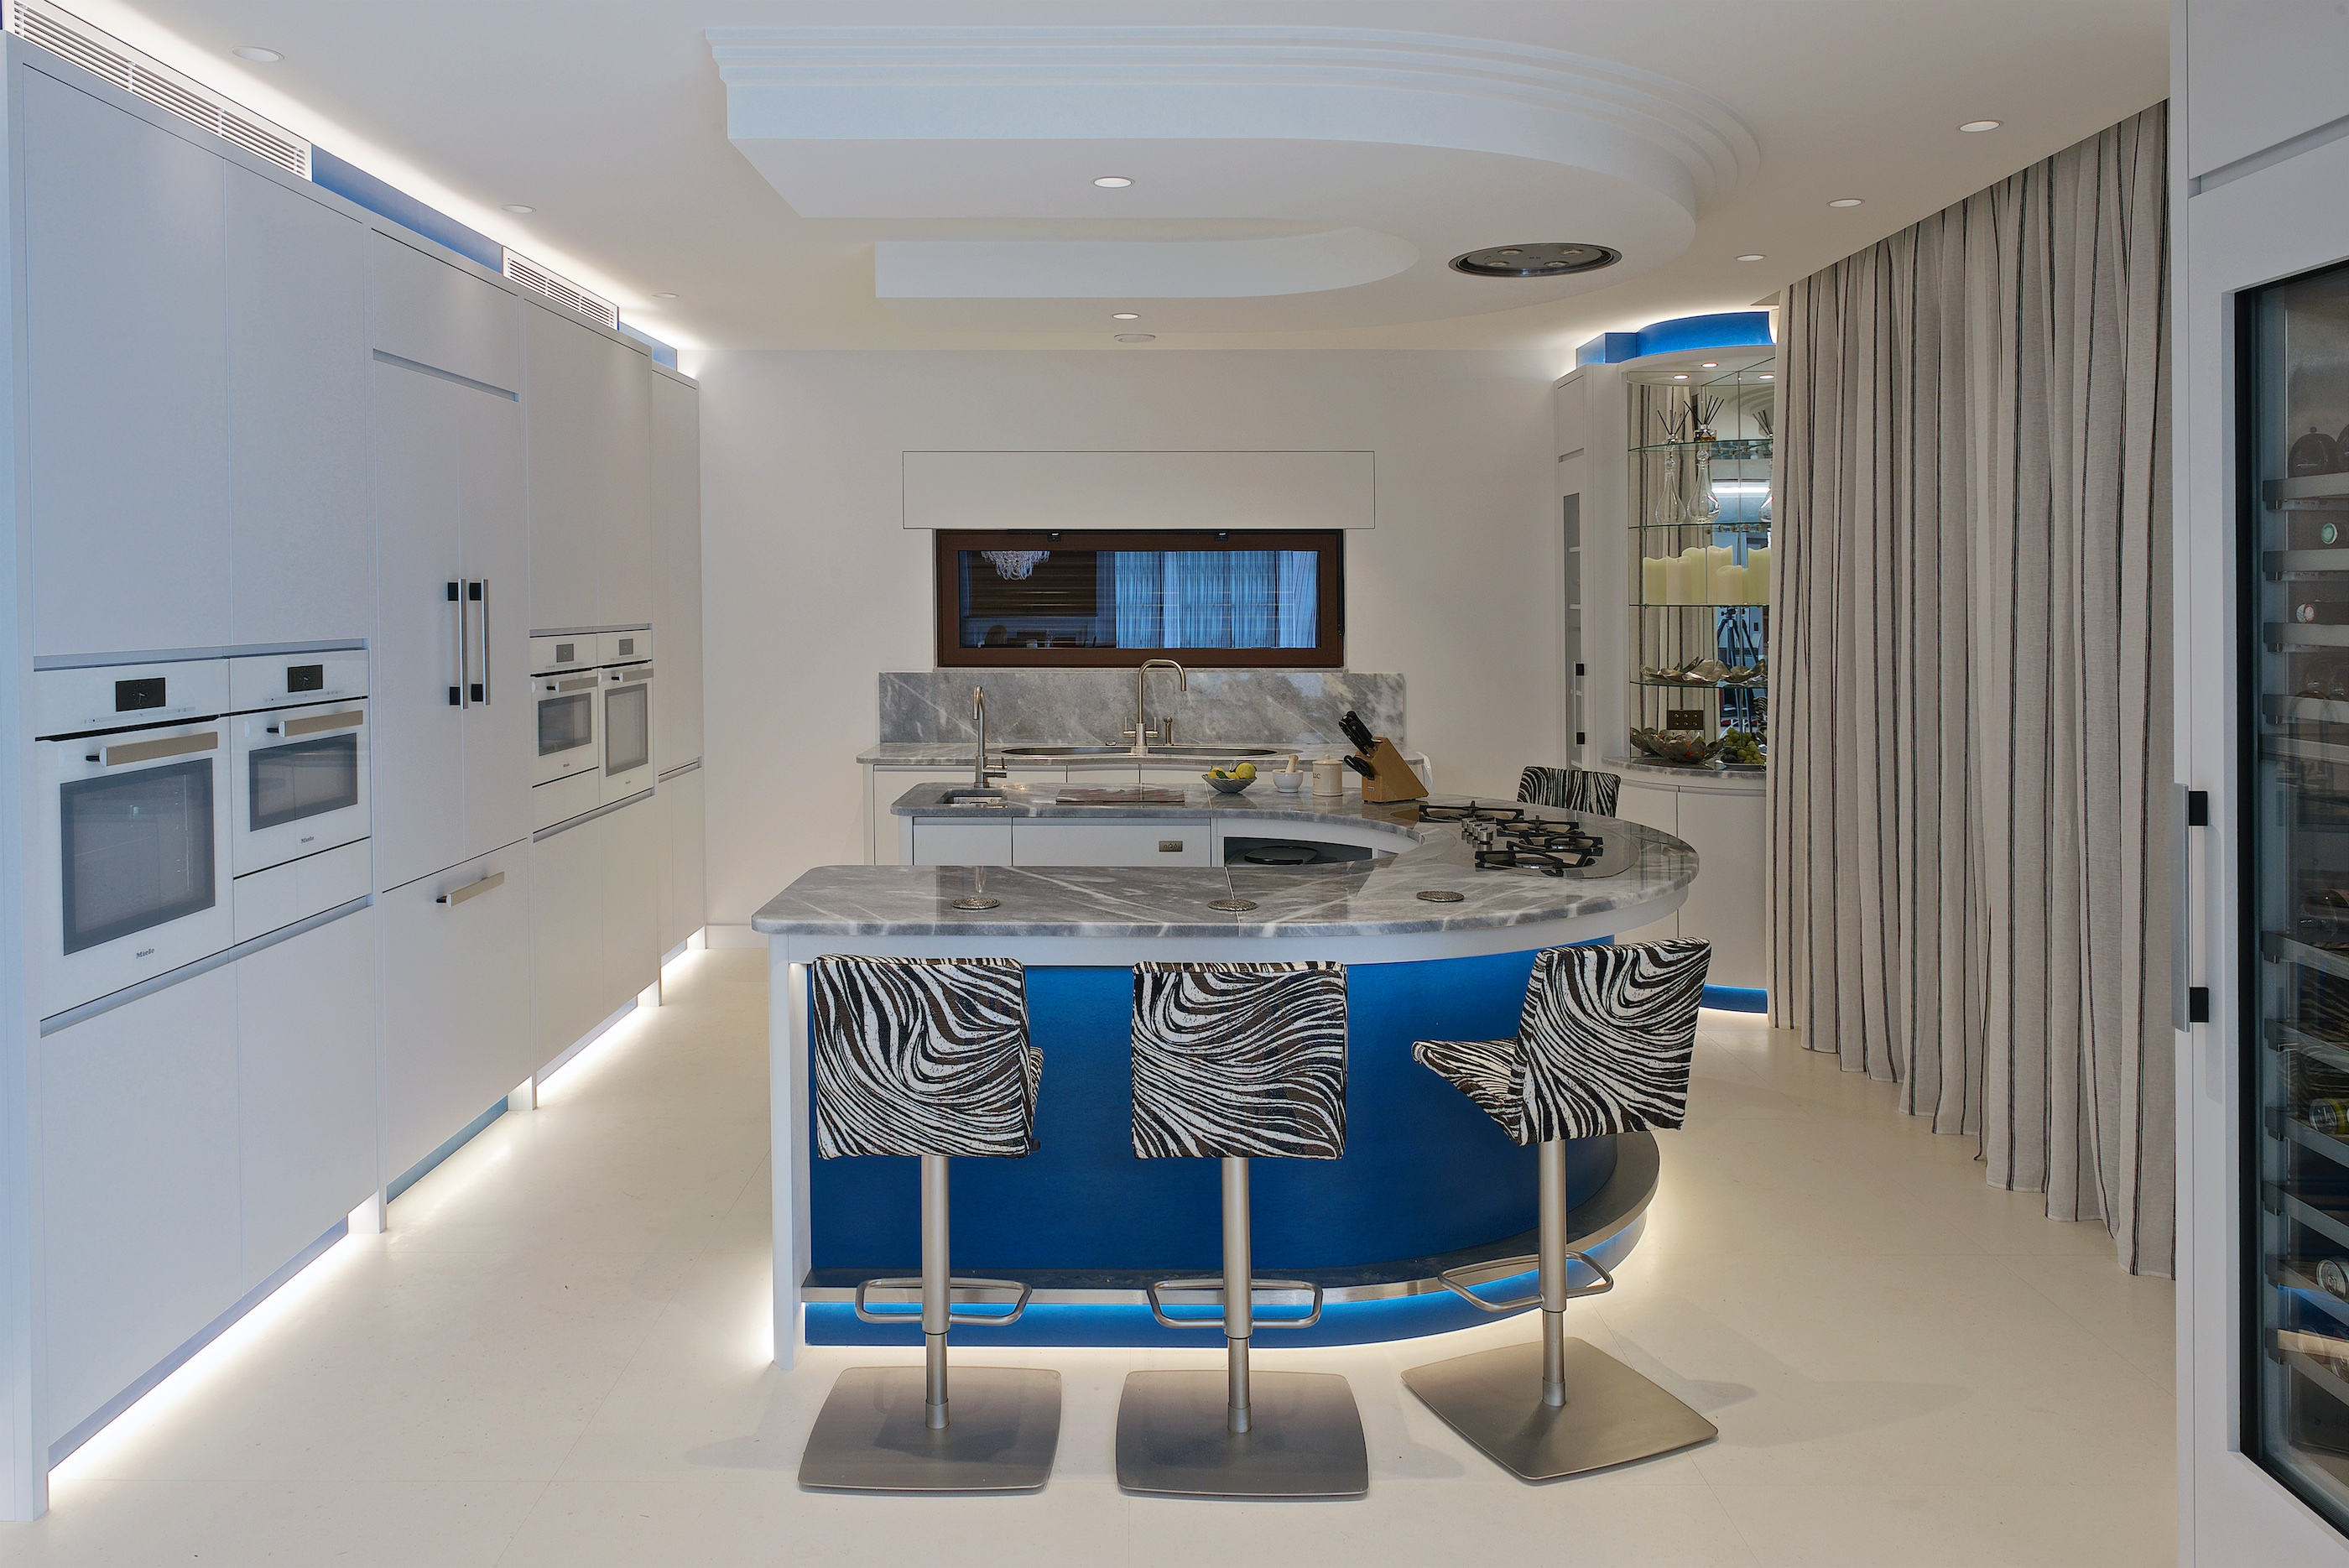 Contemporary blue curved kitchen island with Barazza Tao hob and zebra print kitchen stools with white kitchen cabinets and under cabinet lighting.